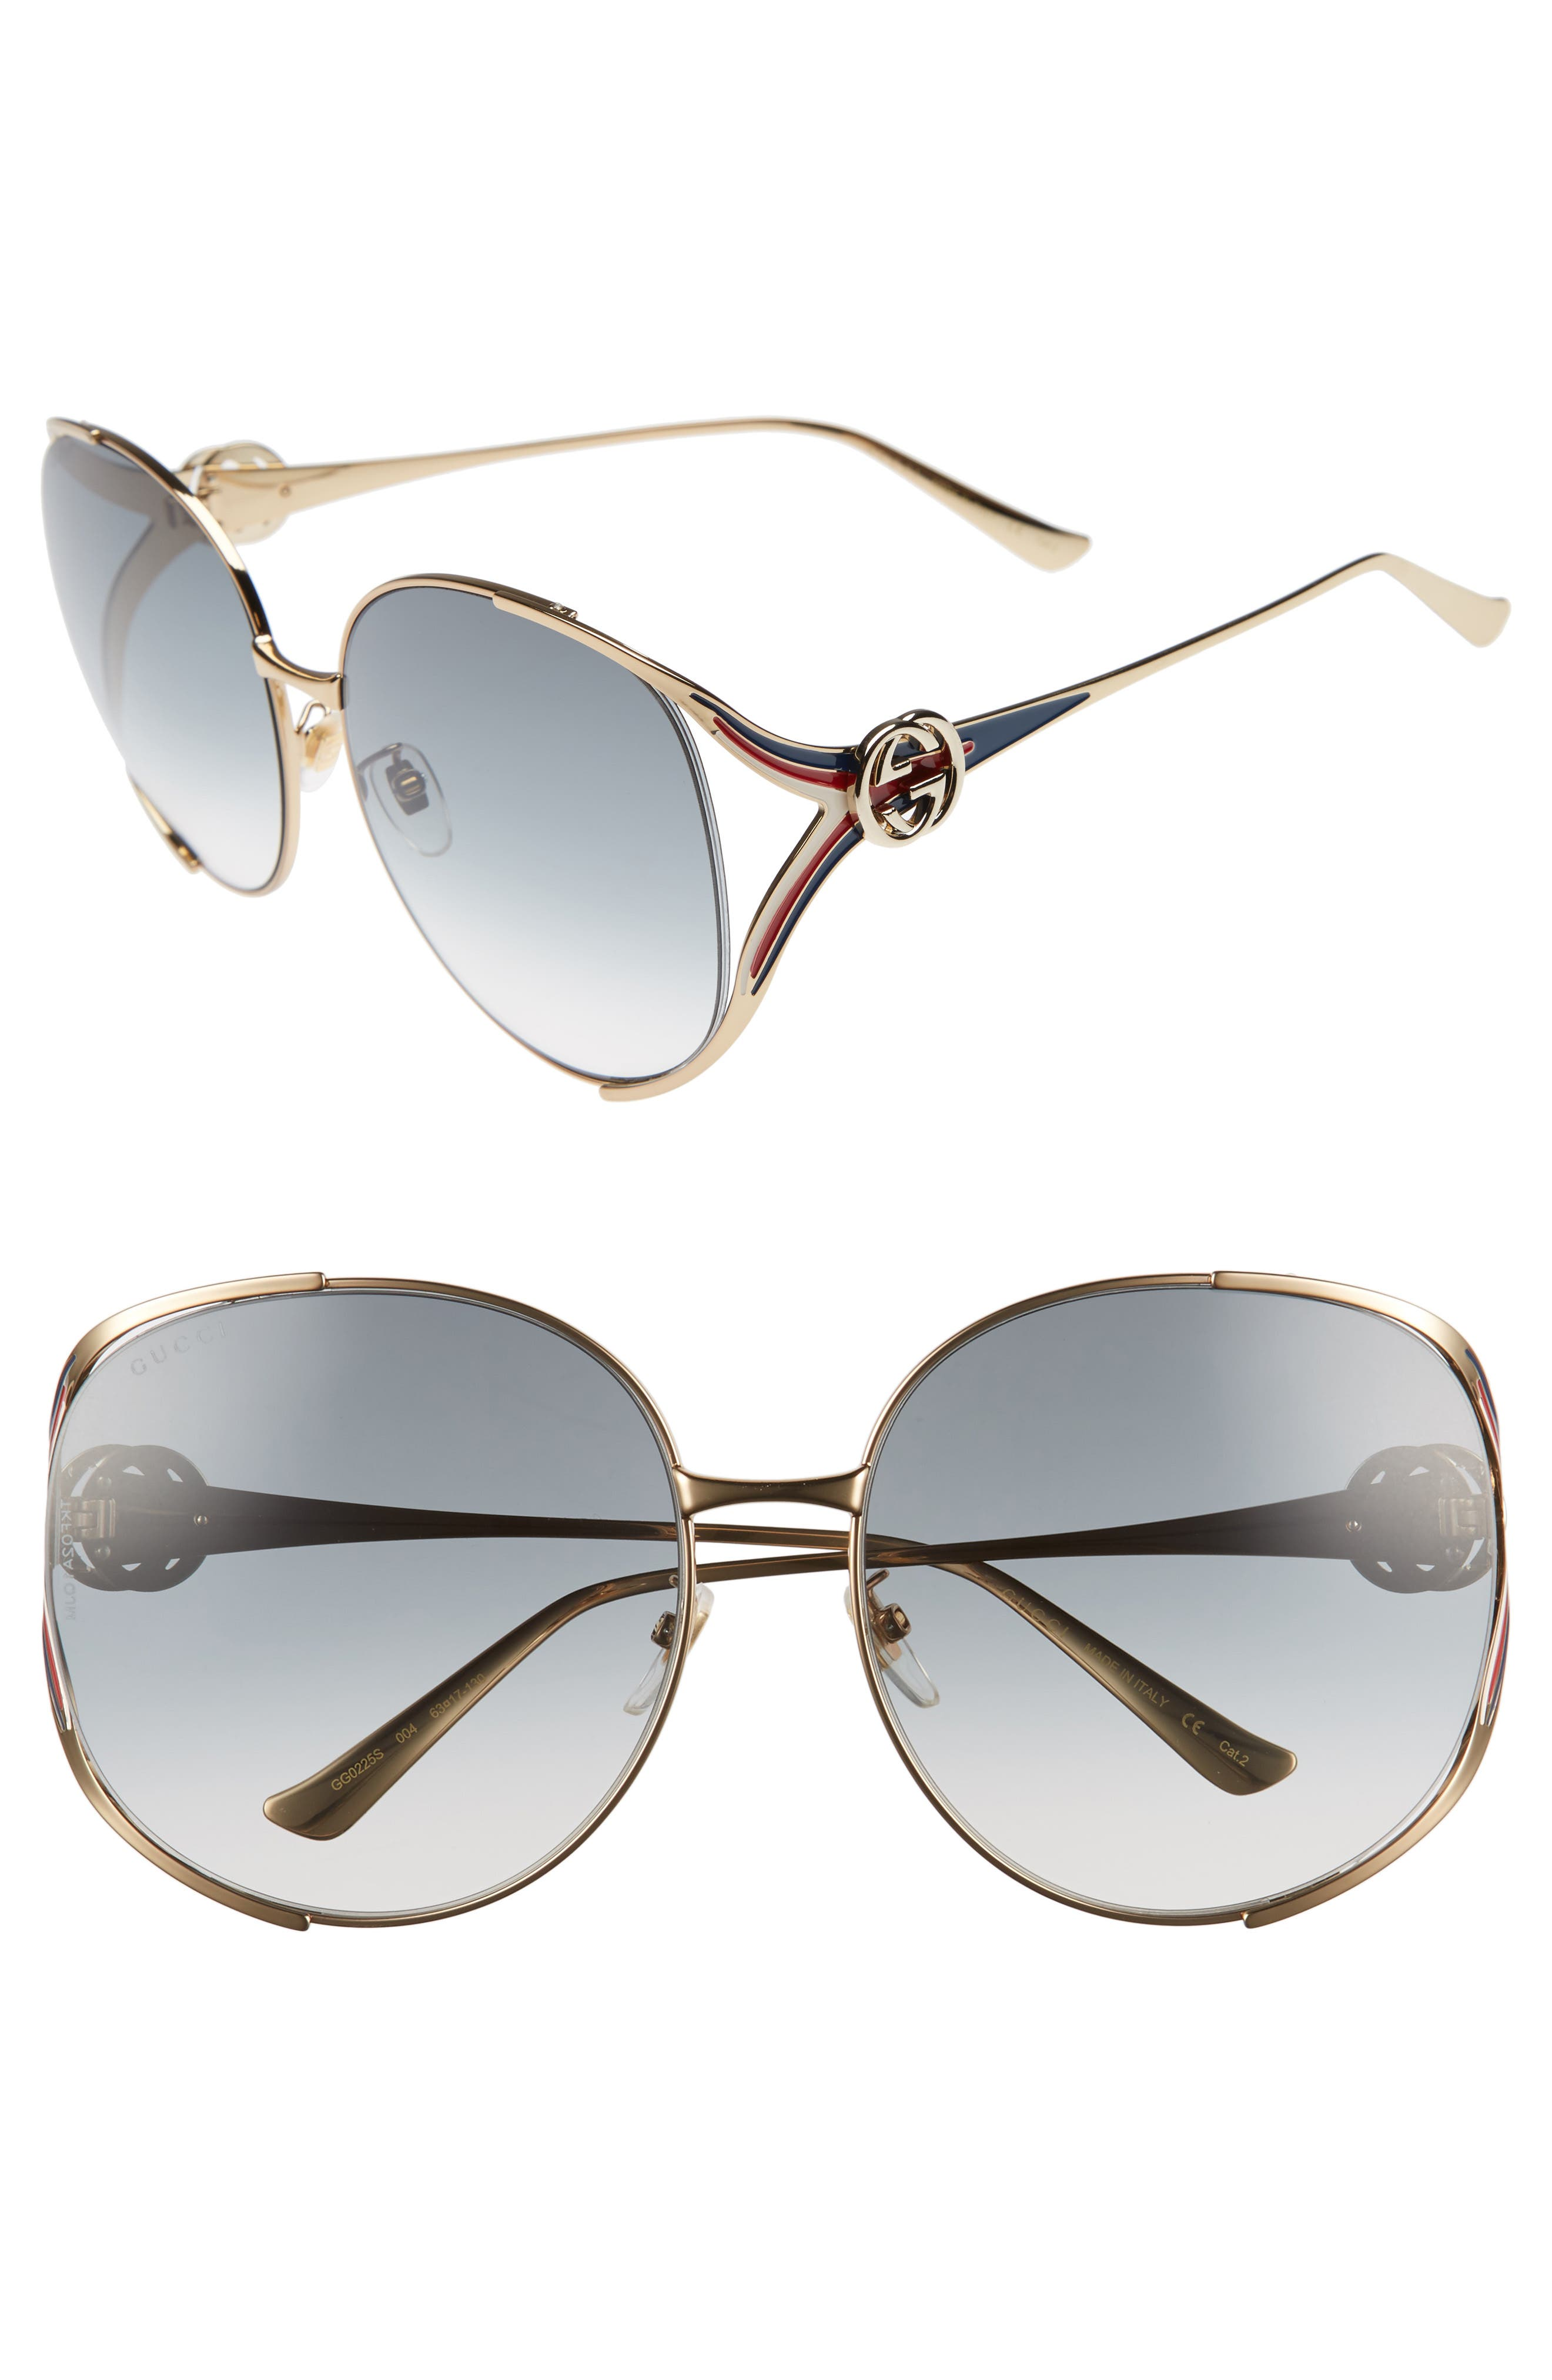 GUCCI, 63mm Open Temple Sunglasses, Main thumbnail 1, color, GOLD/ GREY